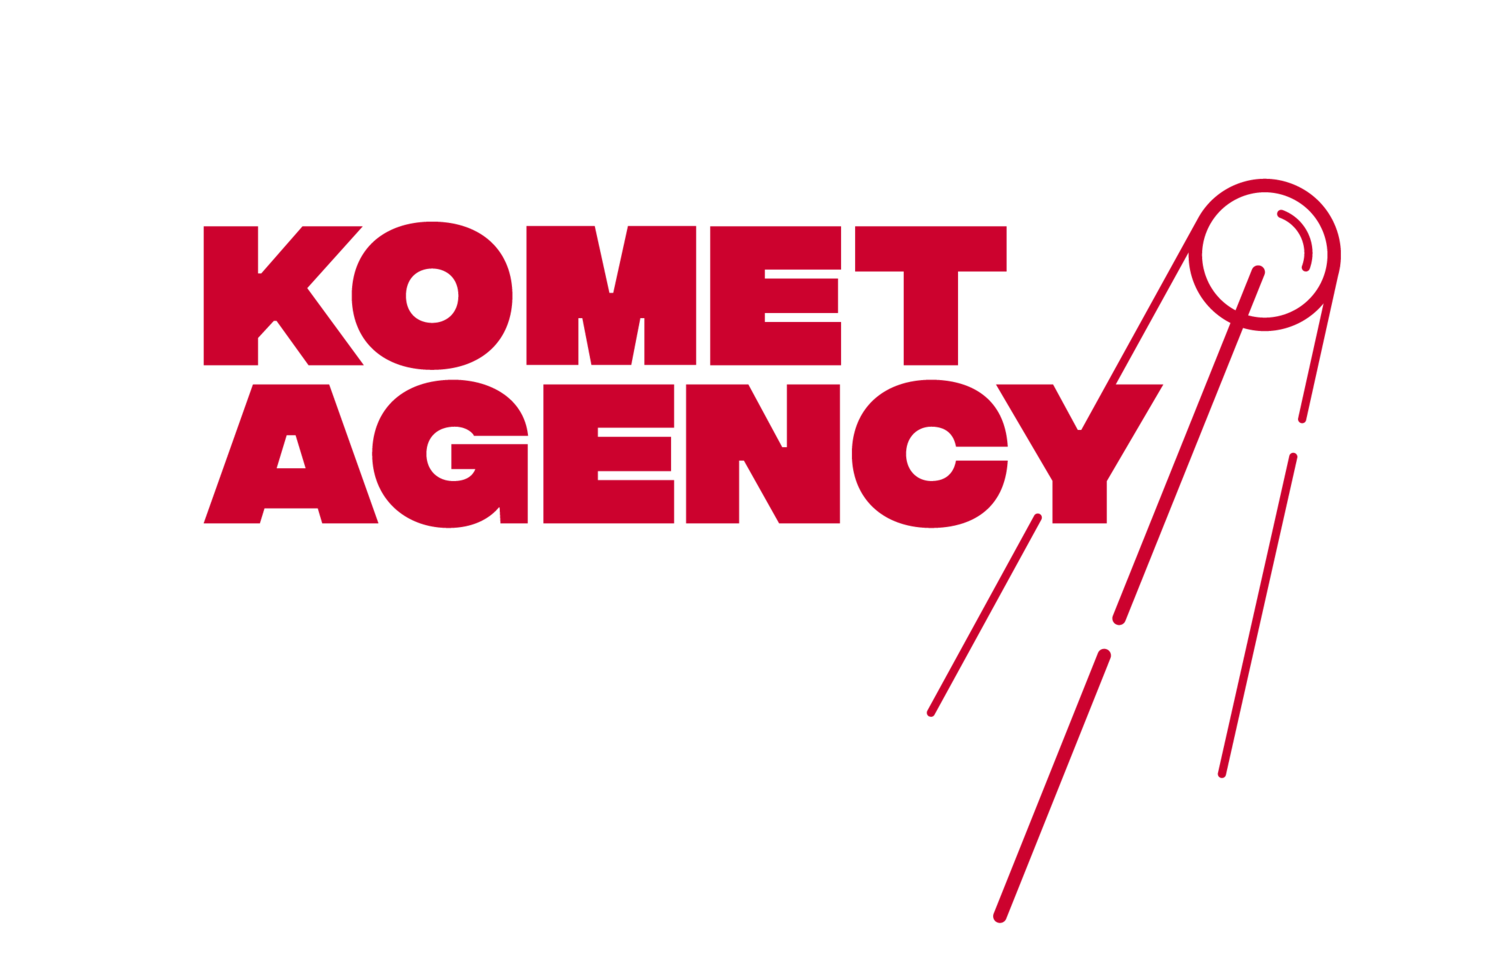 Komet Agency Logotype